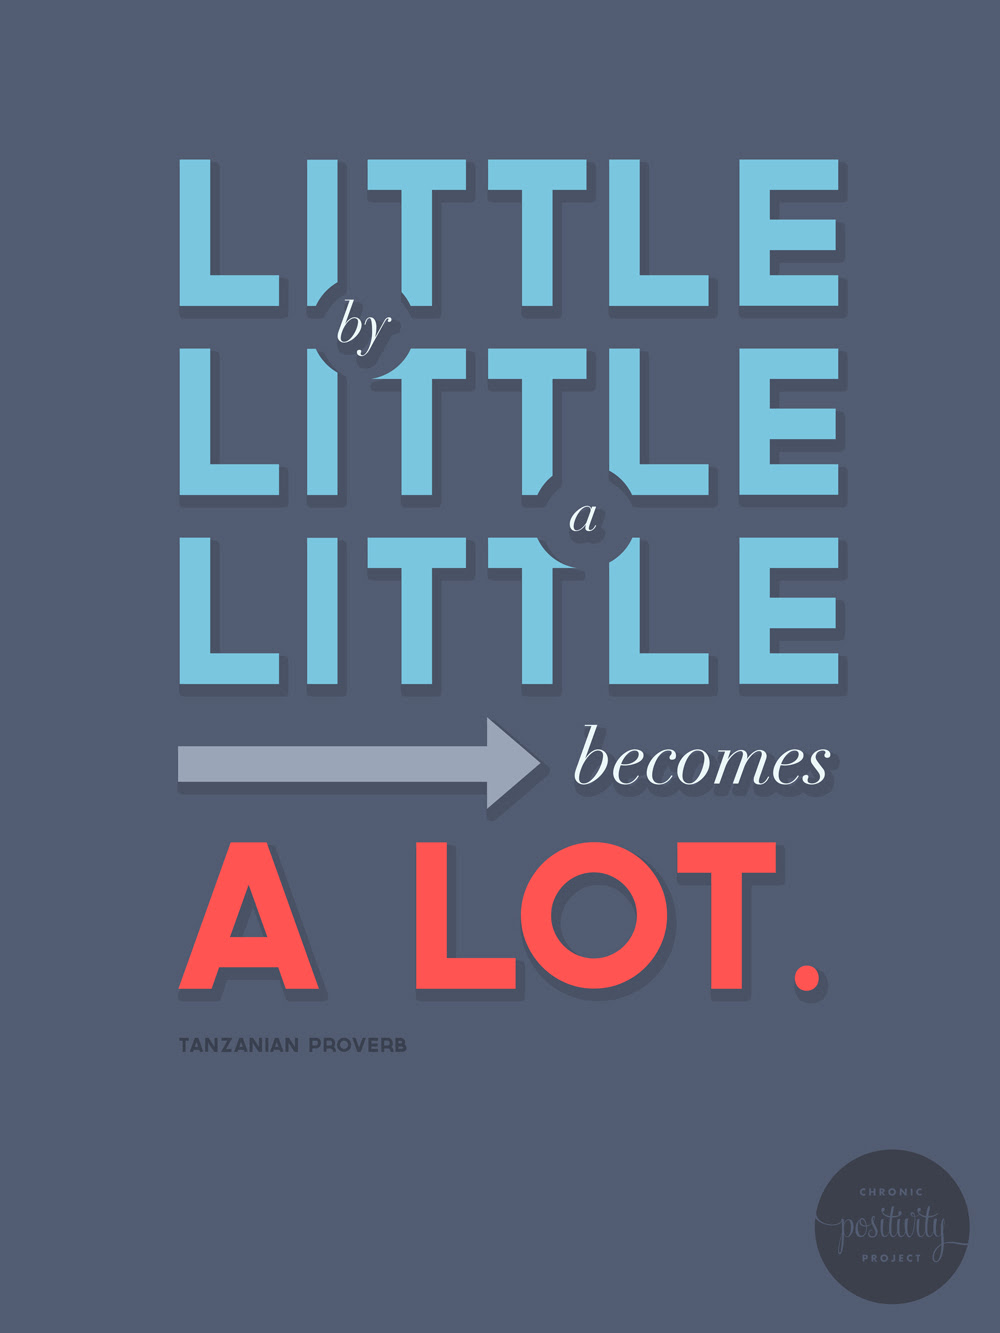 26: Little by Little a little becomes a lot- Tanzanian Proverb